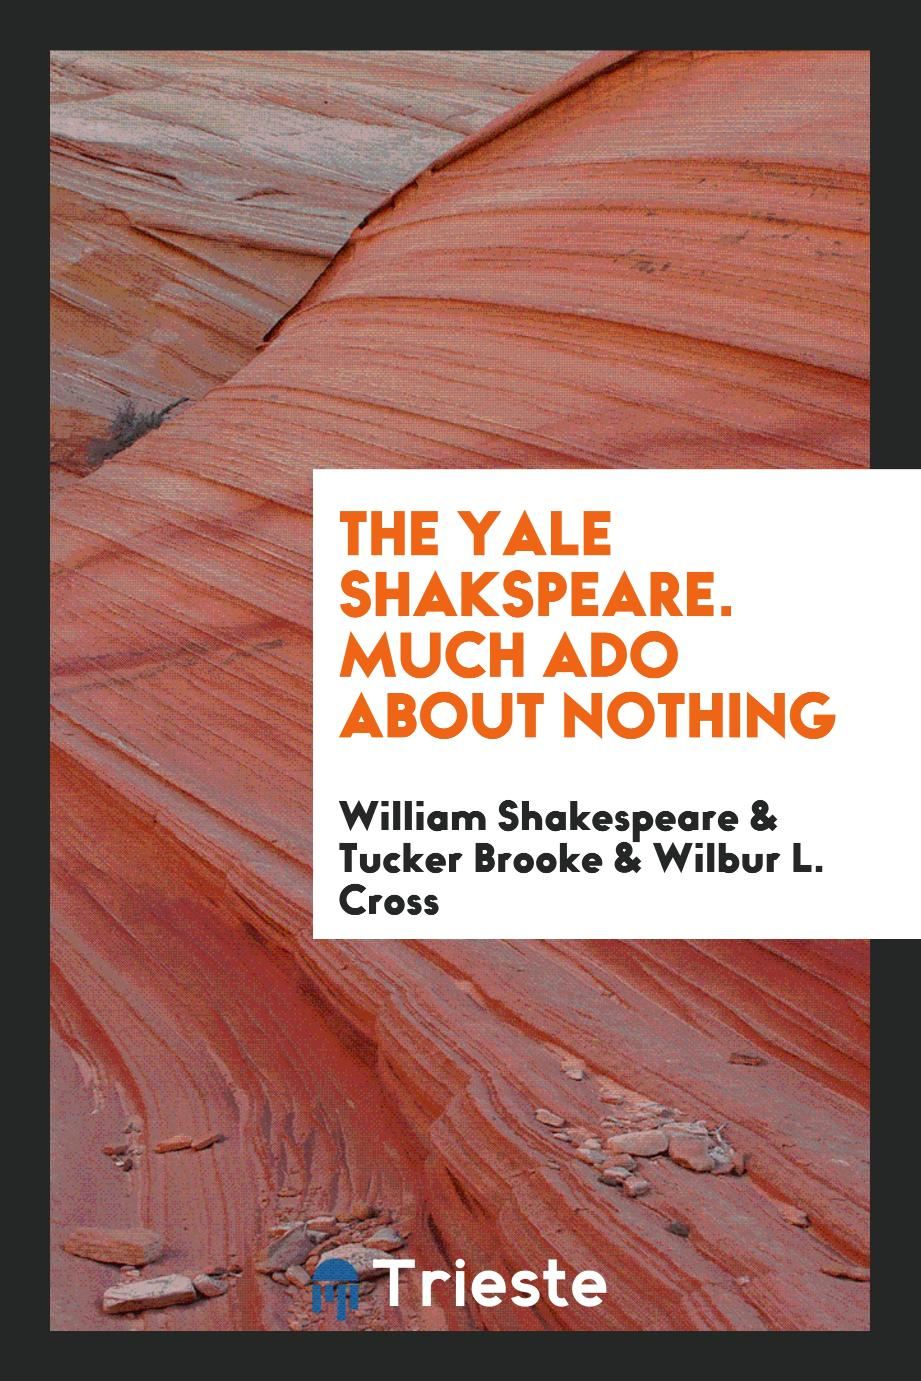 The Yale Shakspeare. Much ado about Nothing